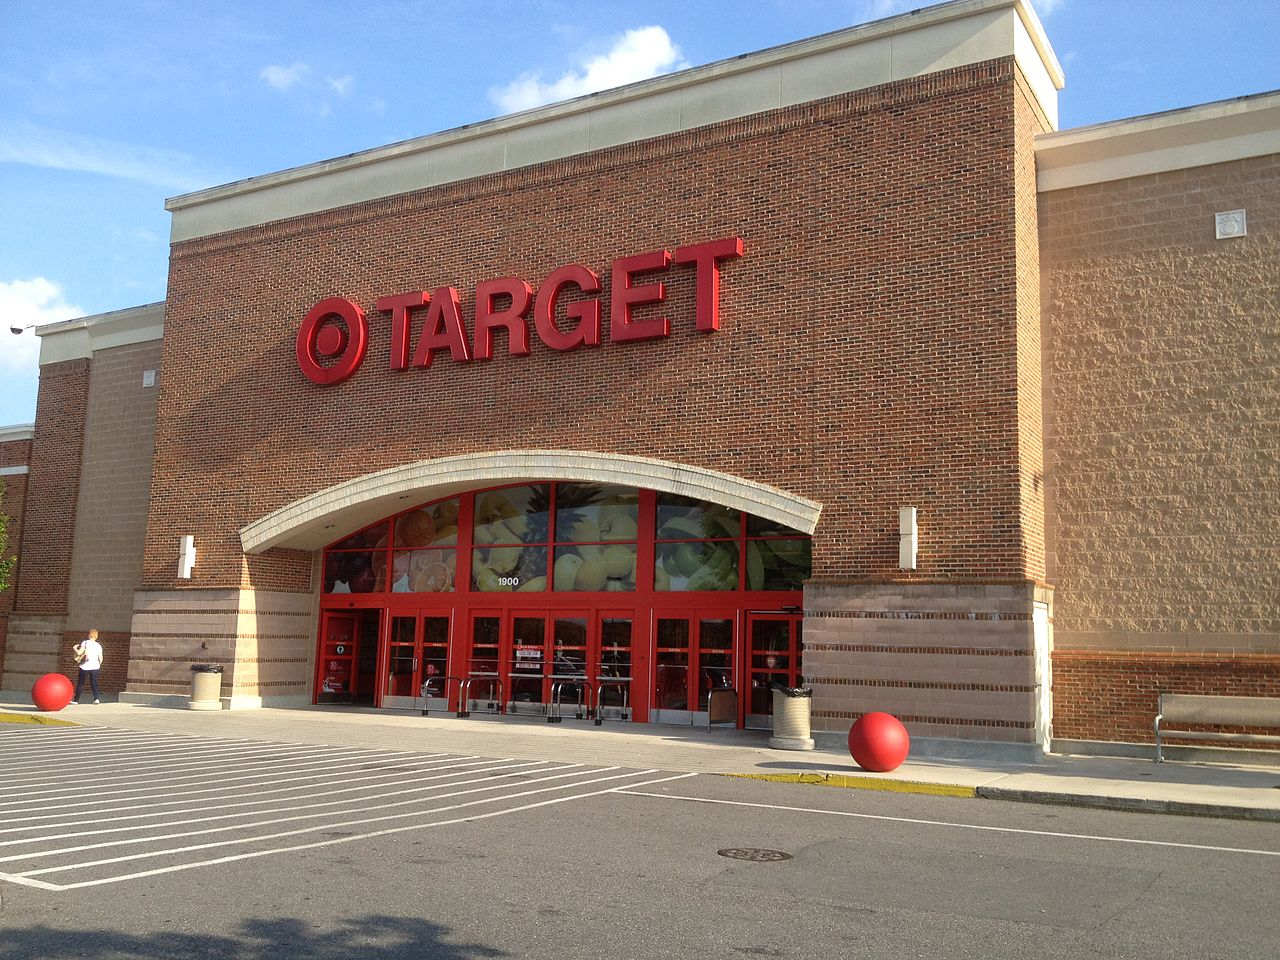 Target store in Rock Hill, South Carolina   Source: Wikimedia Commons/ Mike Kalasnik from Fort Mill, USA, Target Rock Hill, SC (7151362297), CC BY-SA 2.0